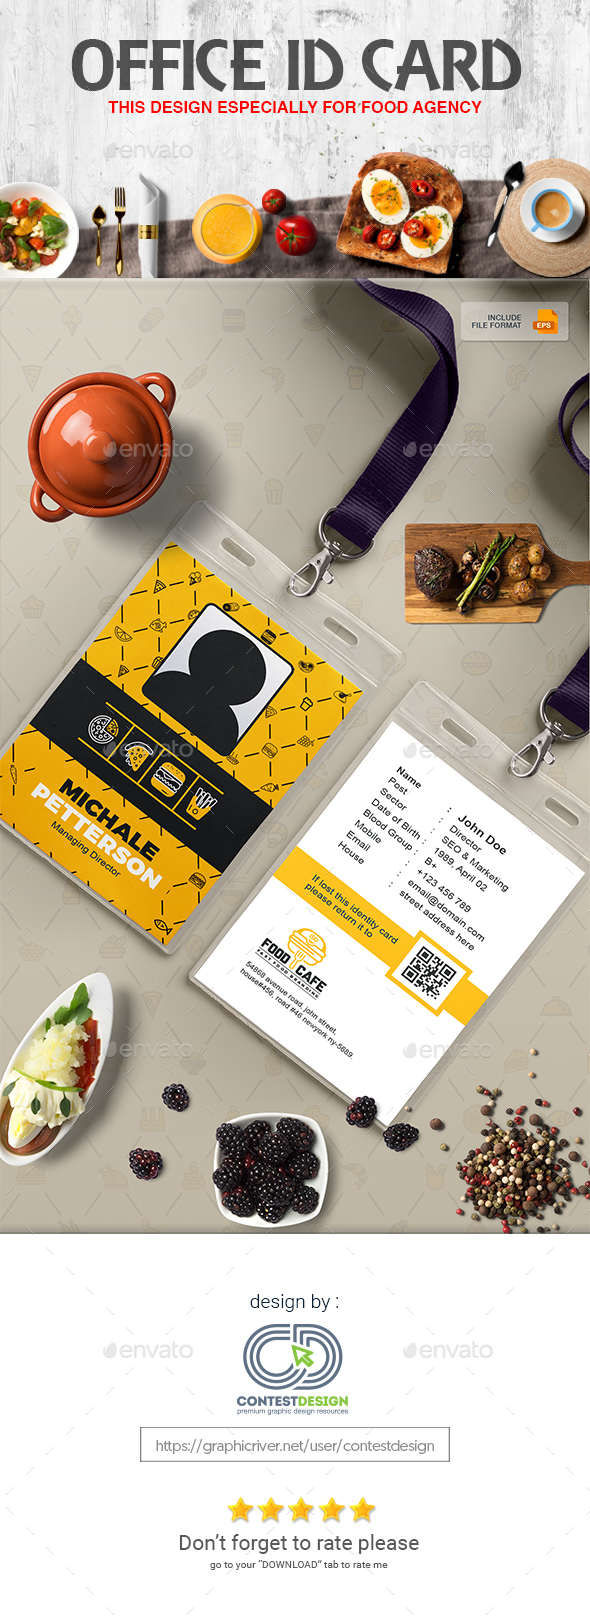 Official ID Card Template for Fast Food / Restaurants / Cafe - Miscellaneous Print Templates